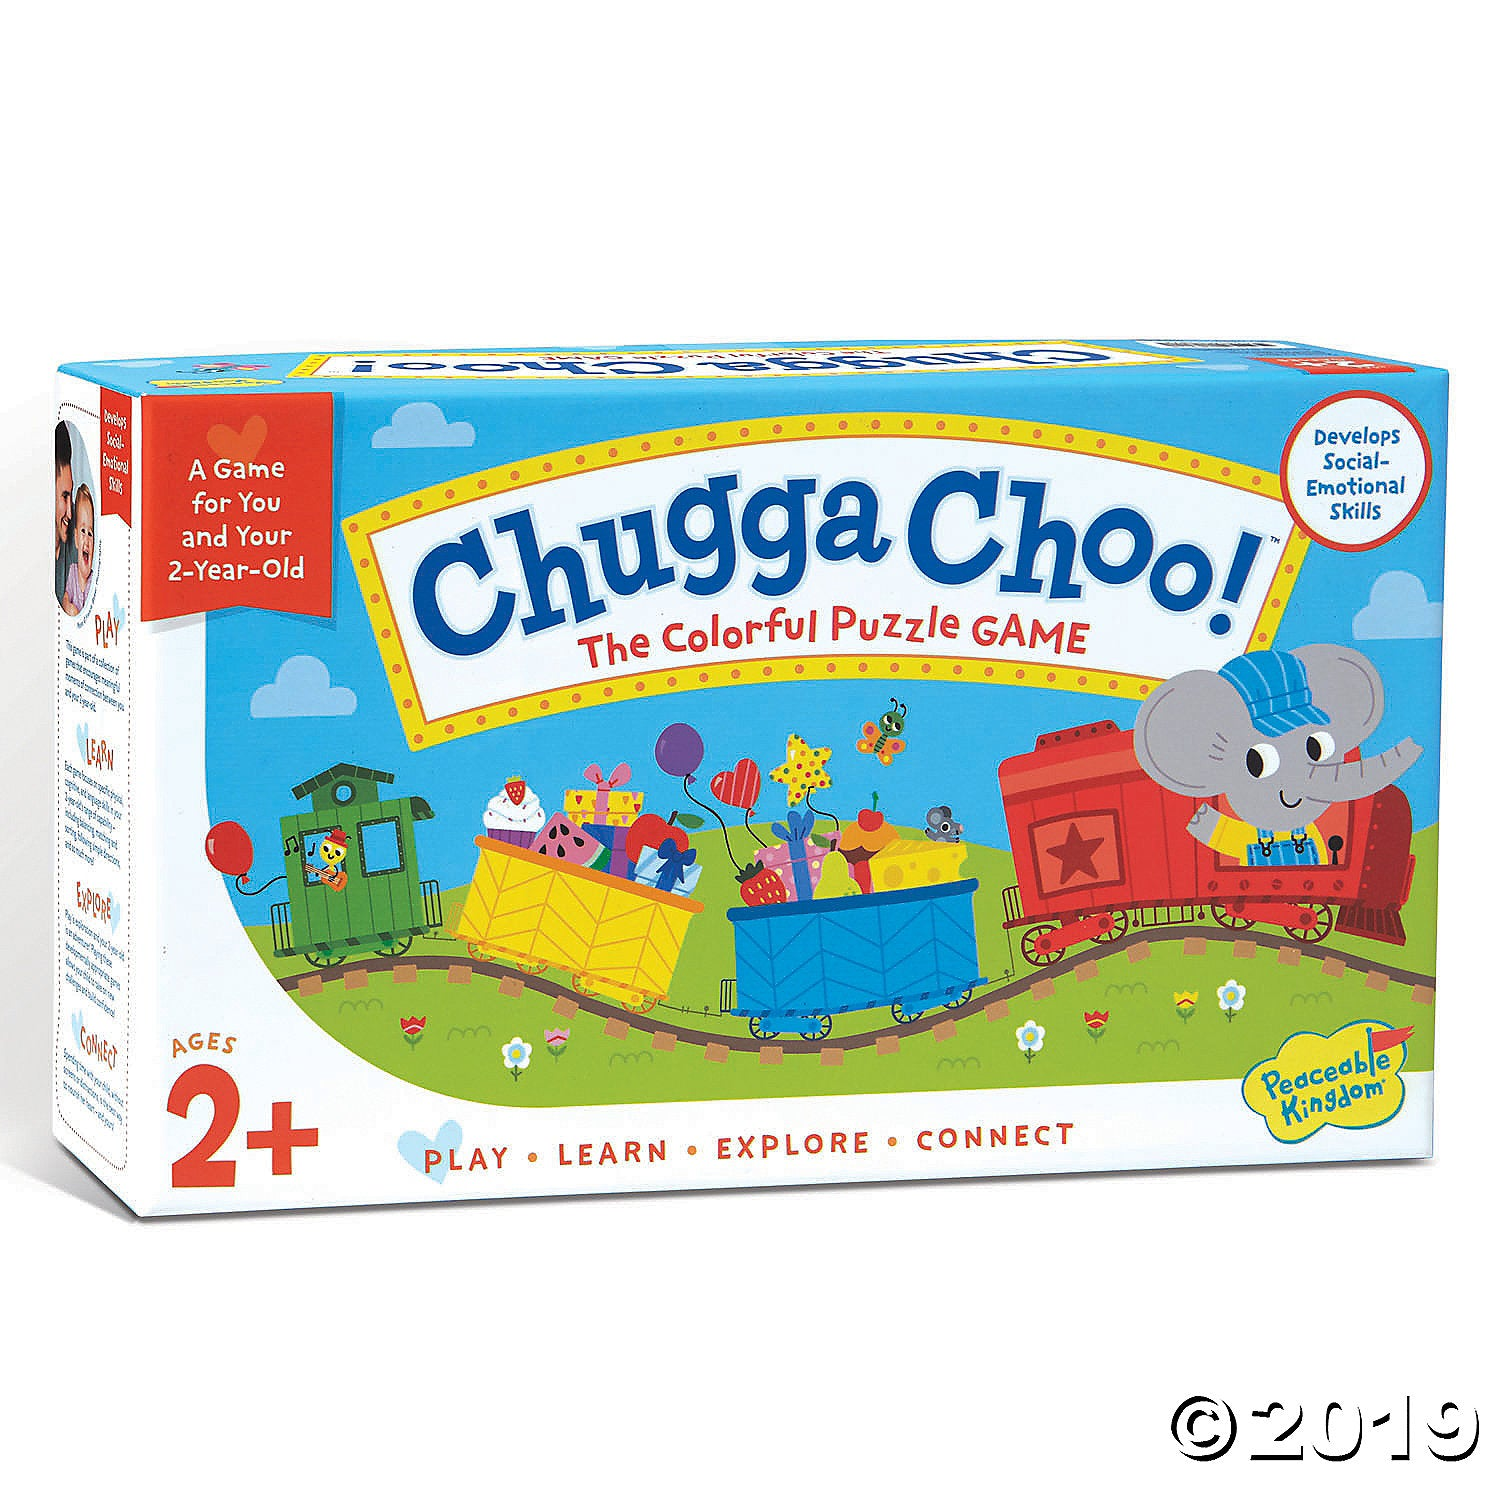 Chugga Choo! The Colorful Puzzle Game